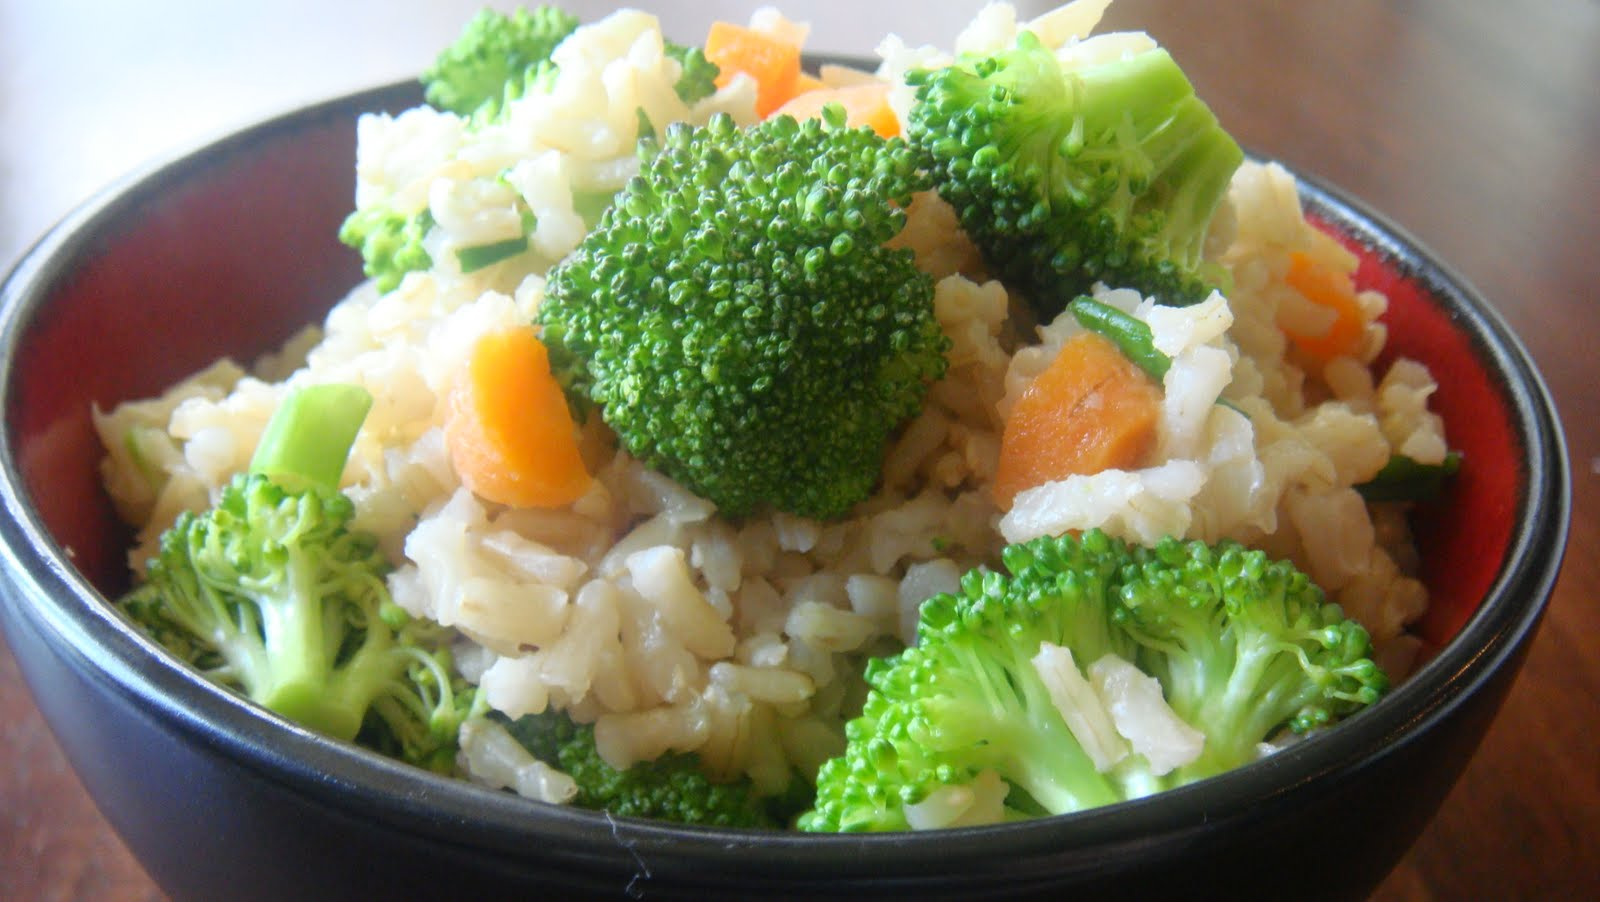 Southwest Veggies over Brown Rice